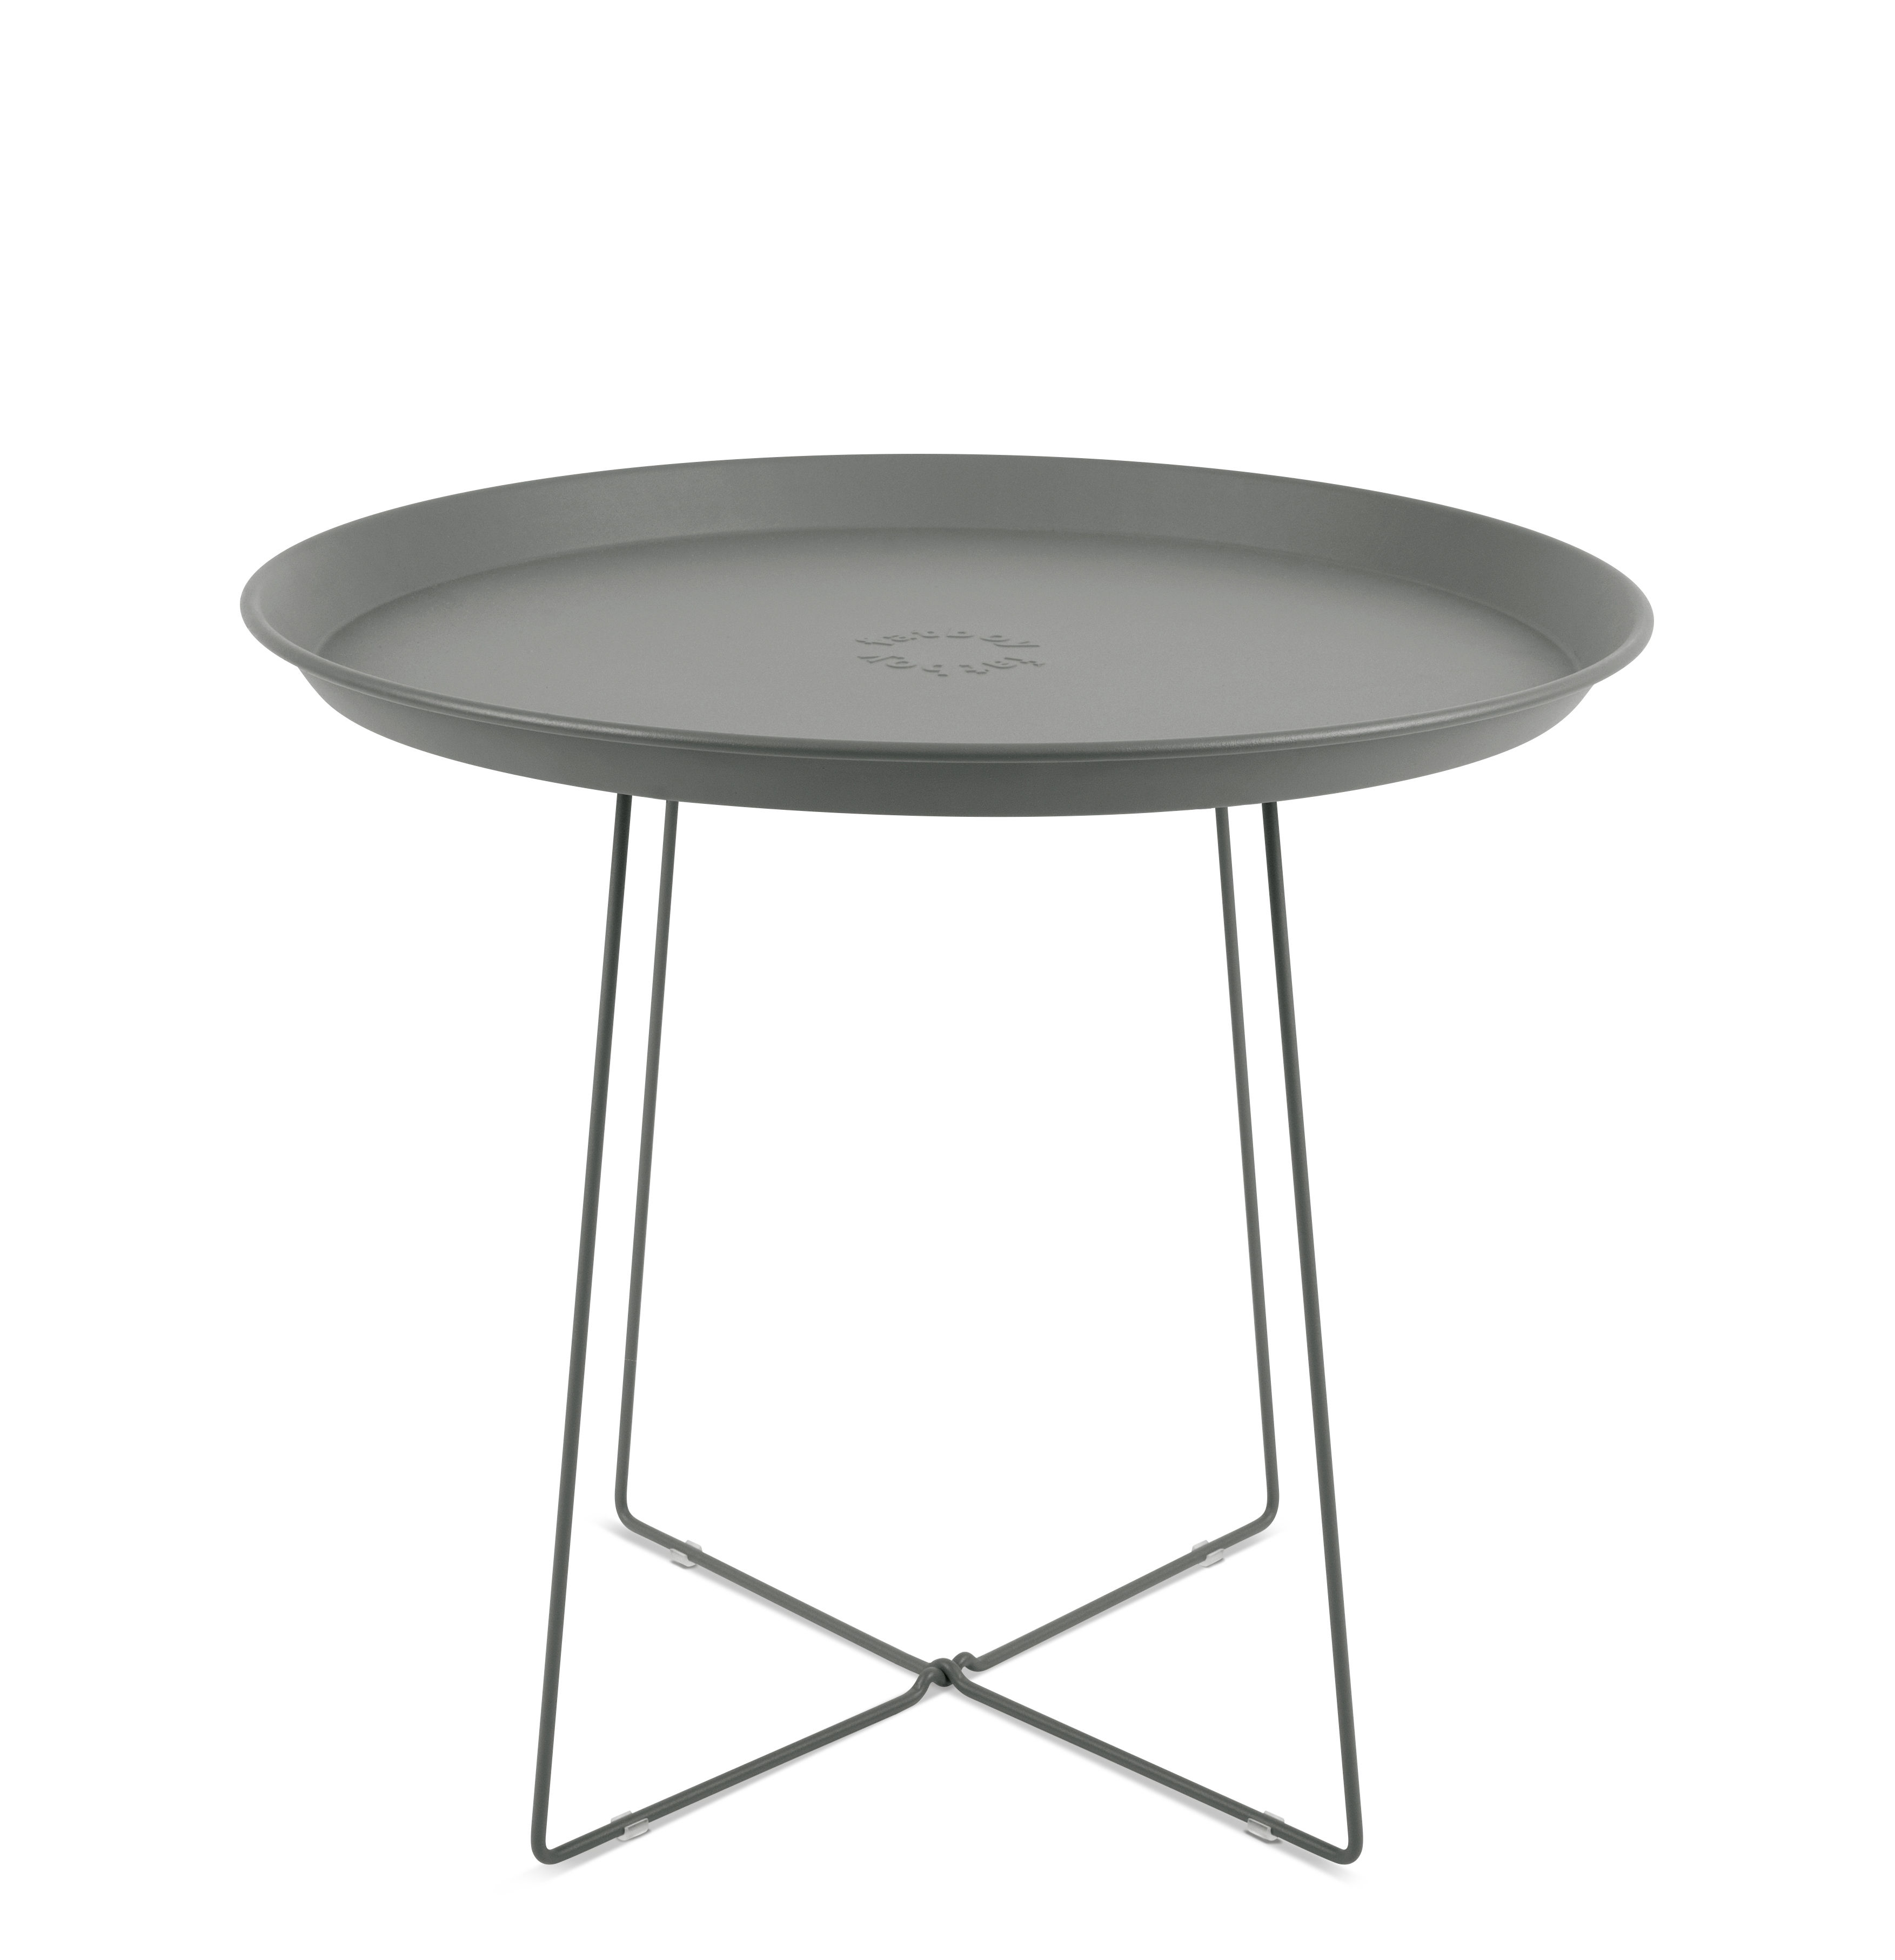 Furniture - Coffee Tables - Plat-o Coffee table - / Detachable top - Ø 56 x H 46 cm by Fatboy - Grey - Painted steel